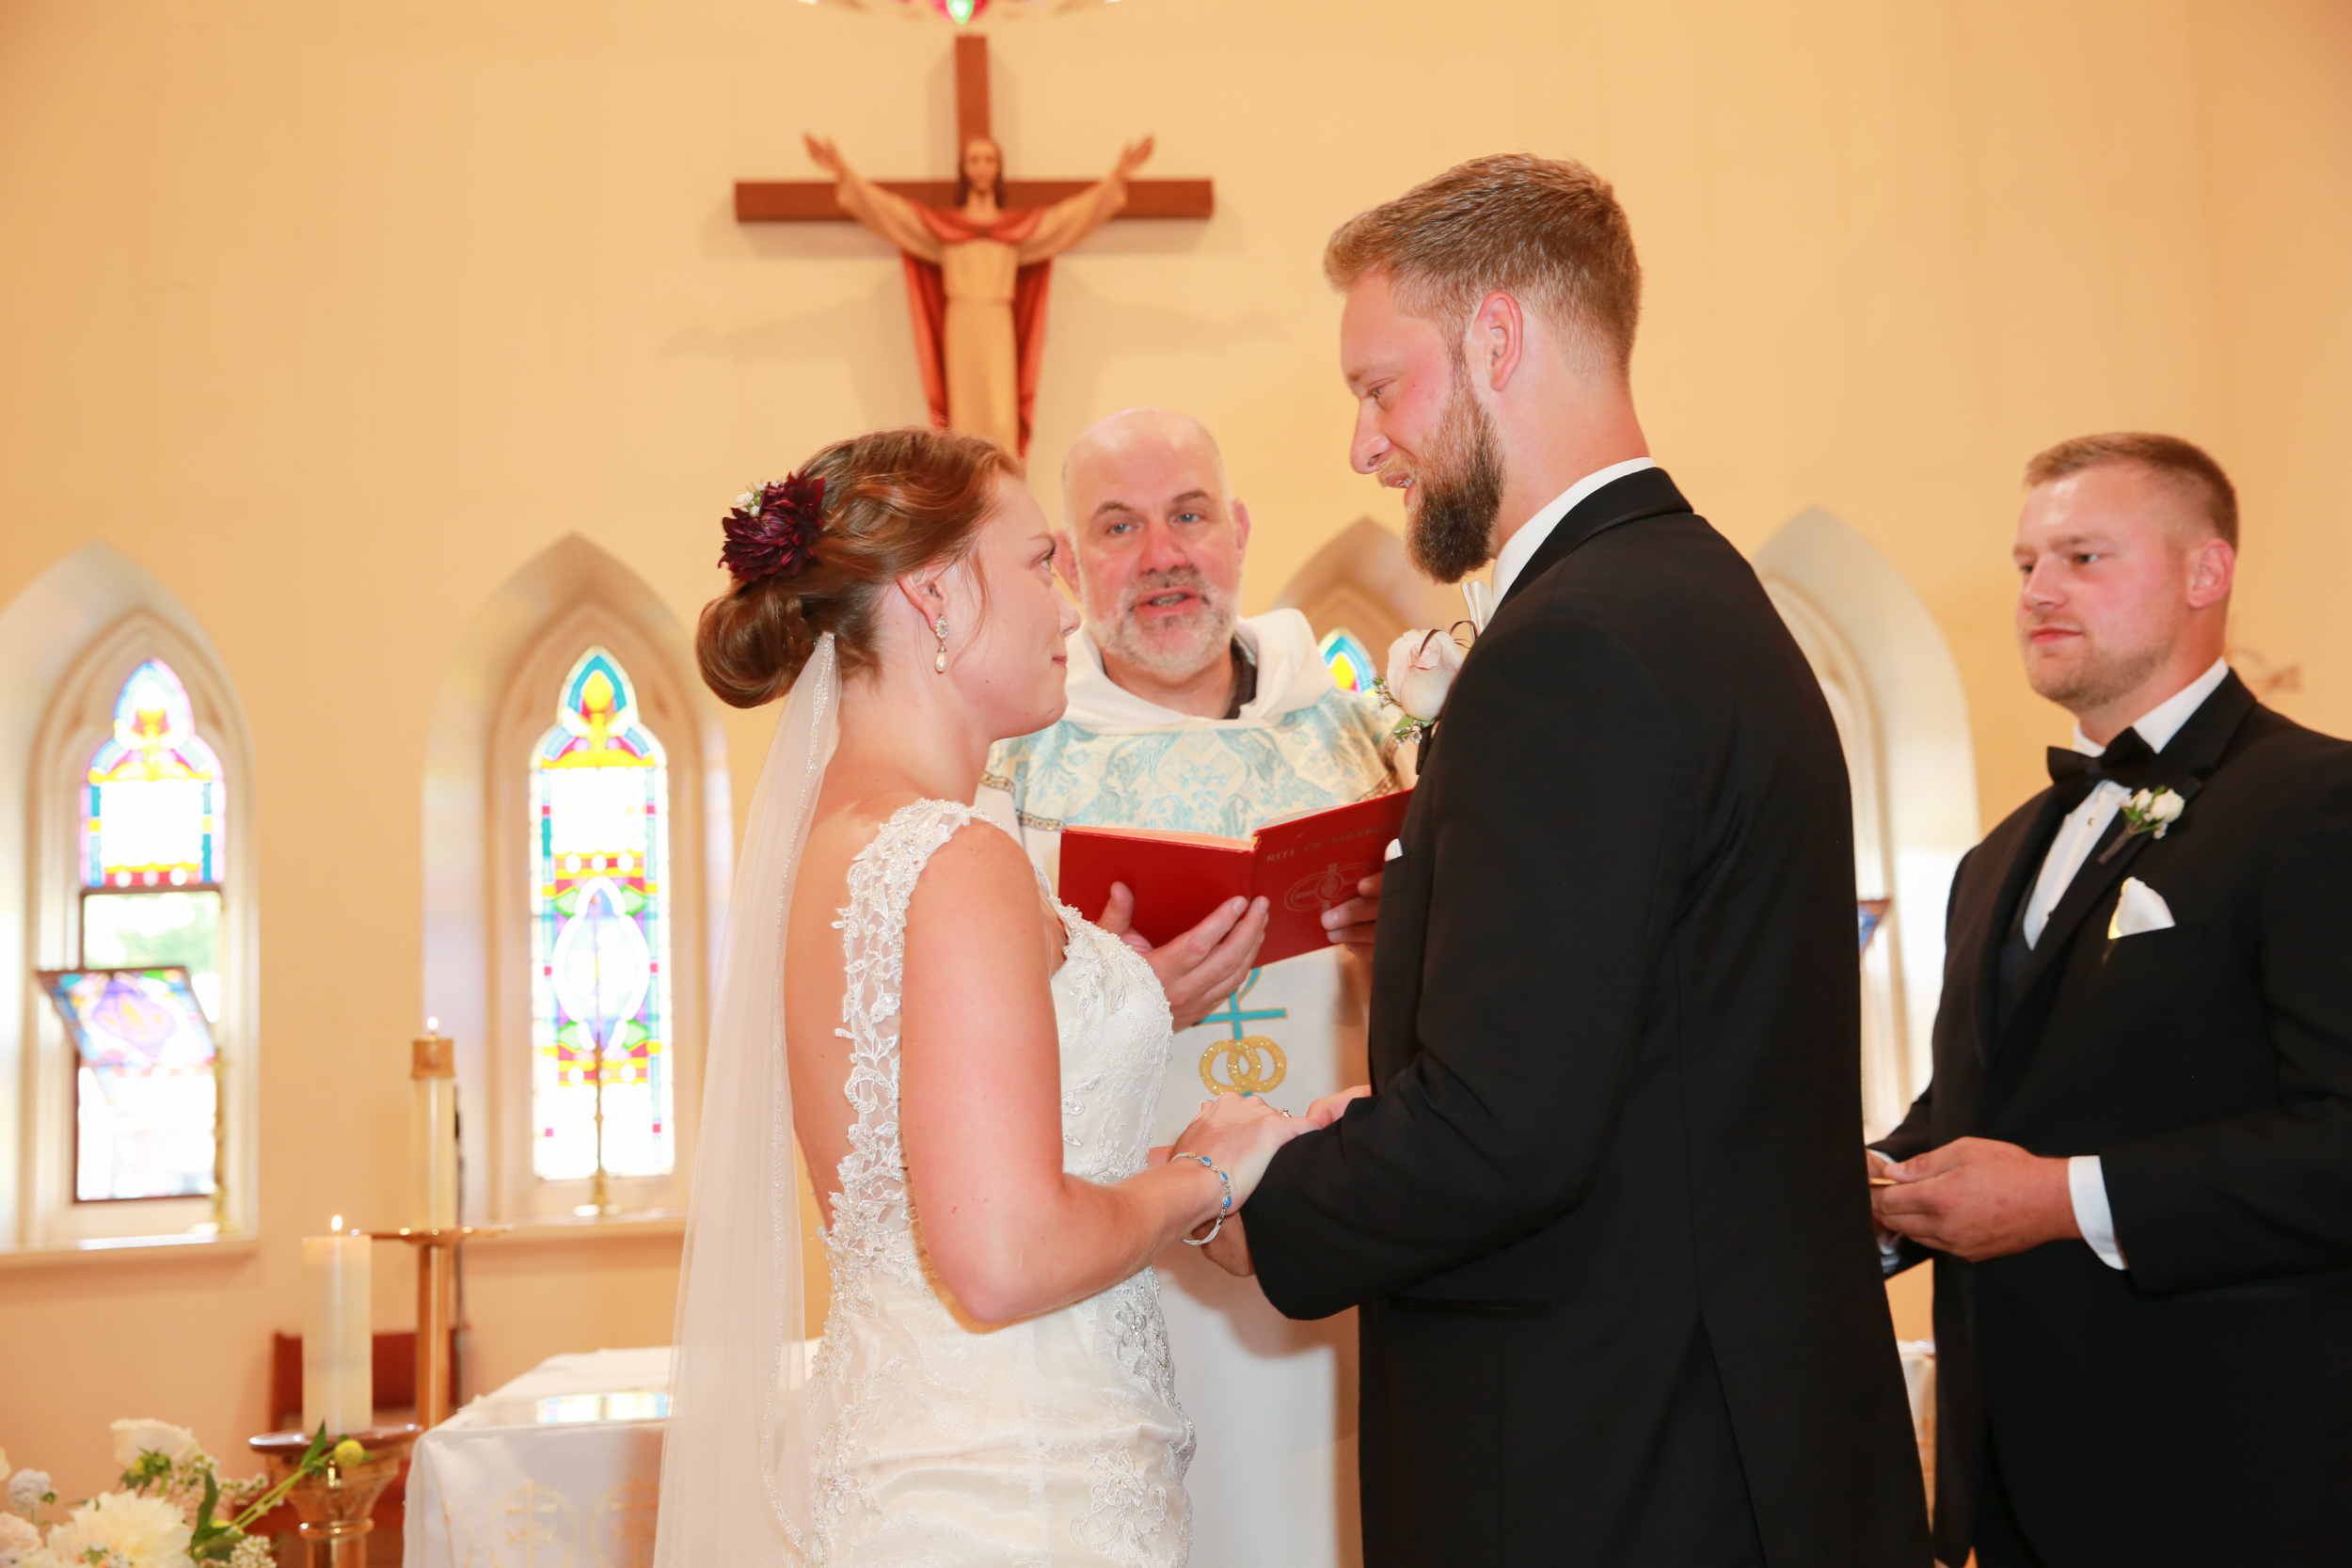 Bride and Groom during wedding vows at St. Mary's in Saugerties, NY